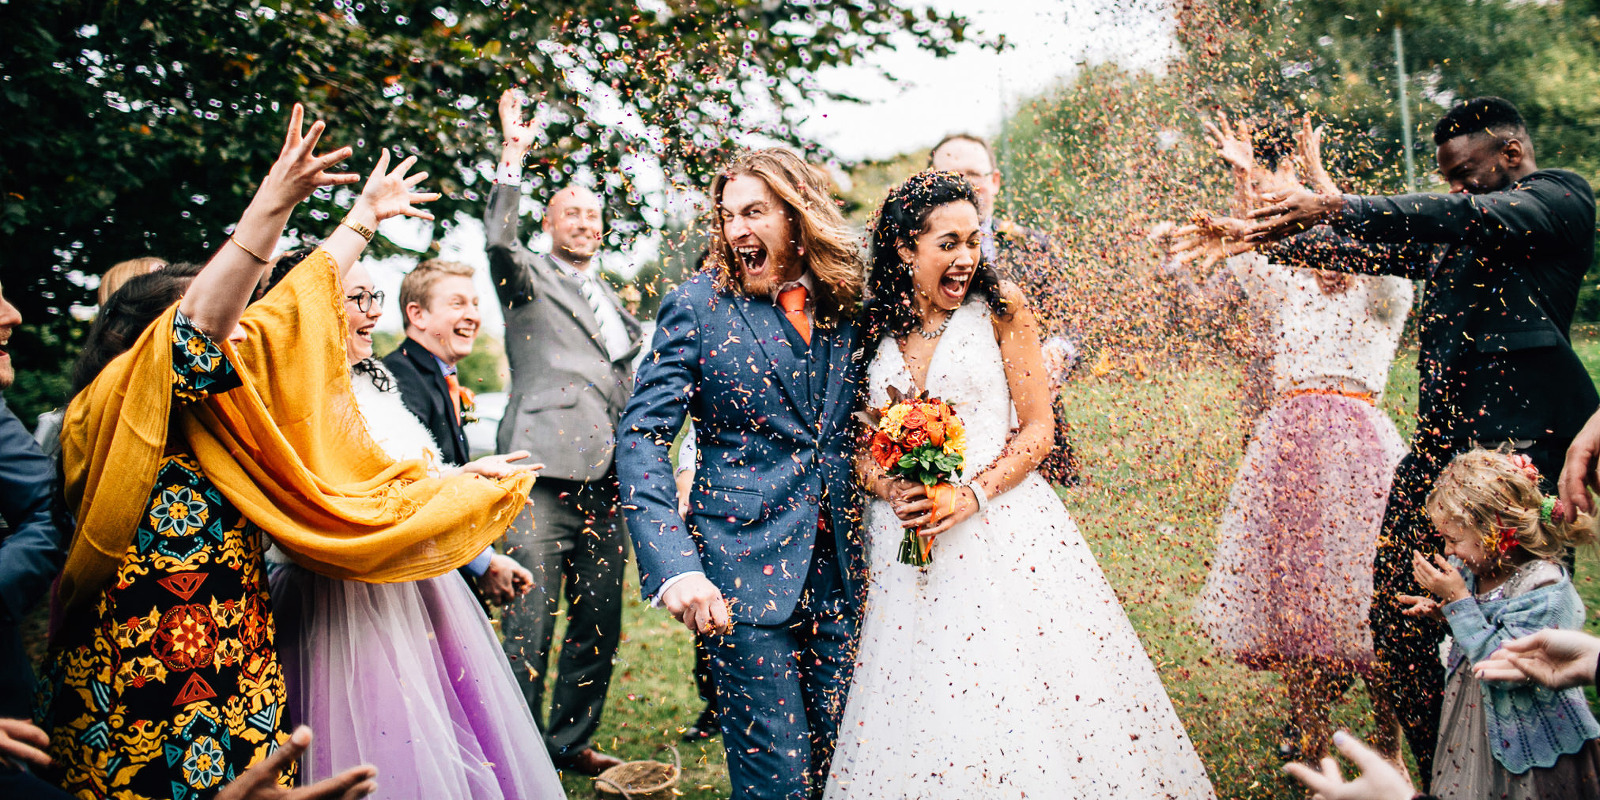 fun relaxed informal candid wedding photography in london